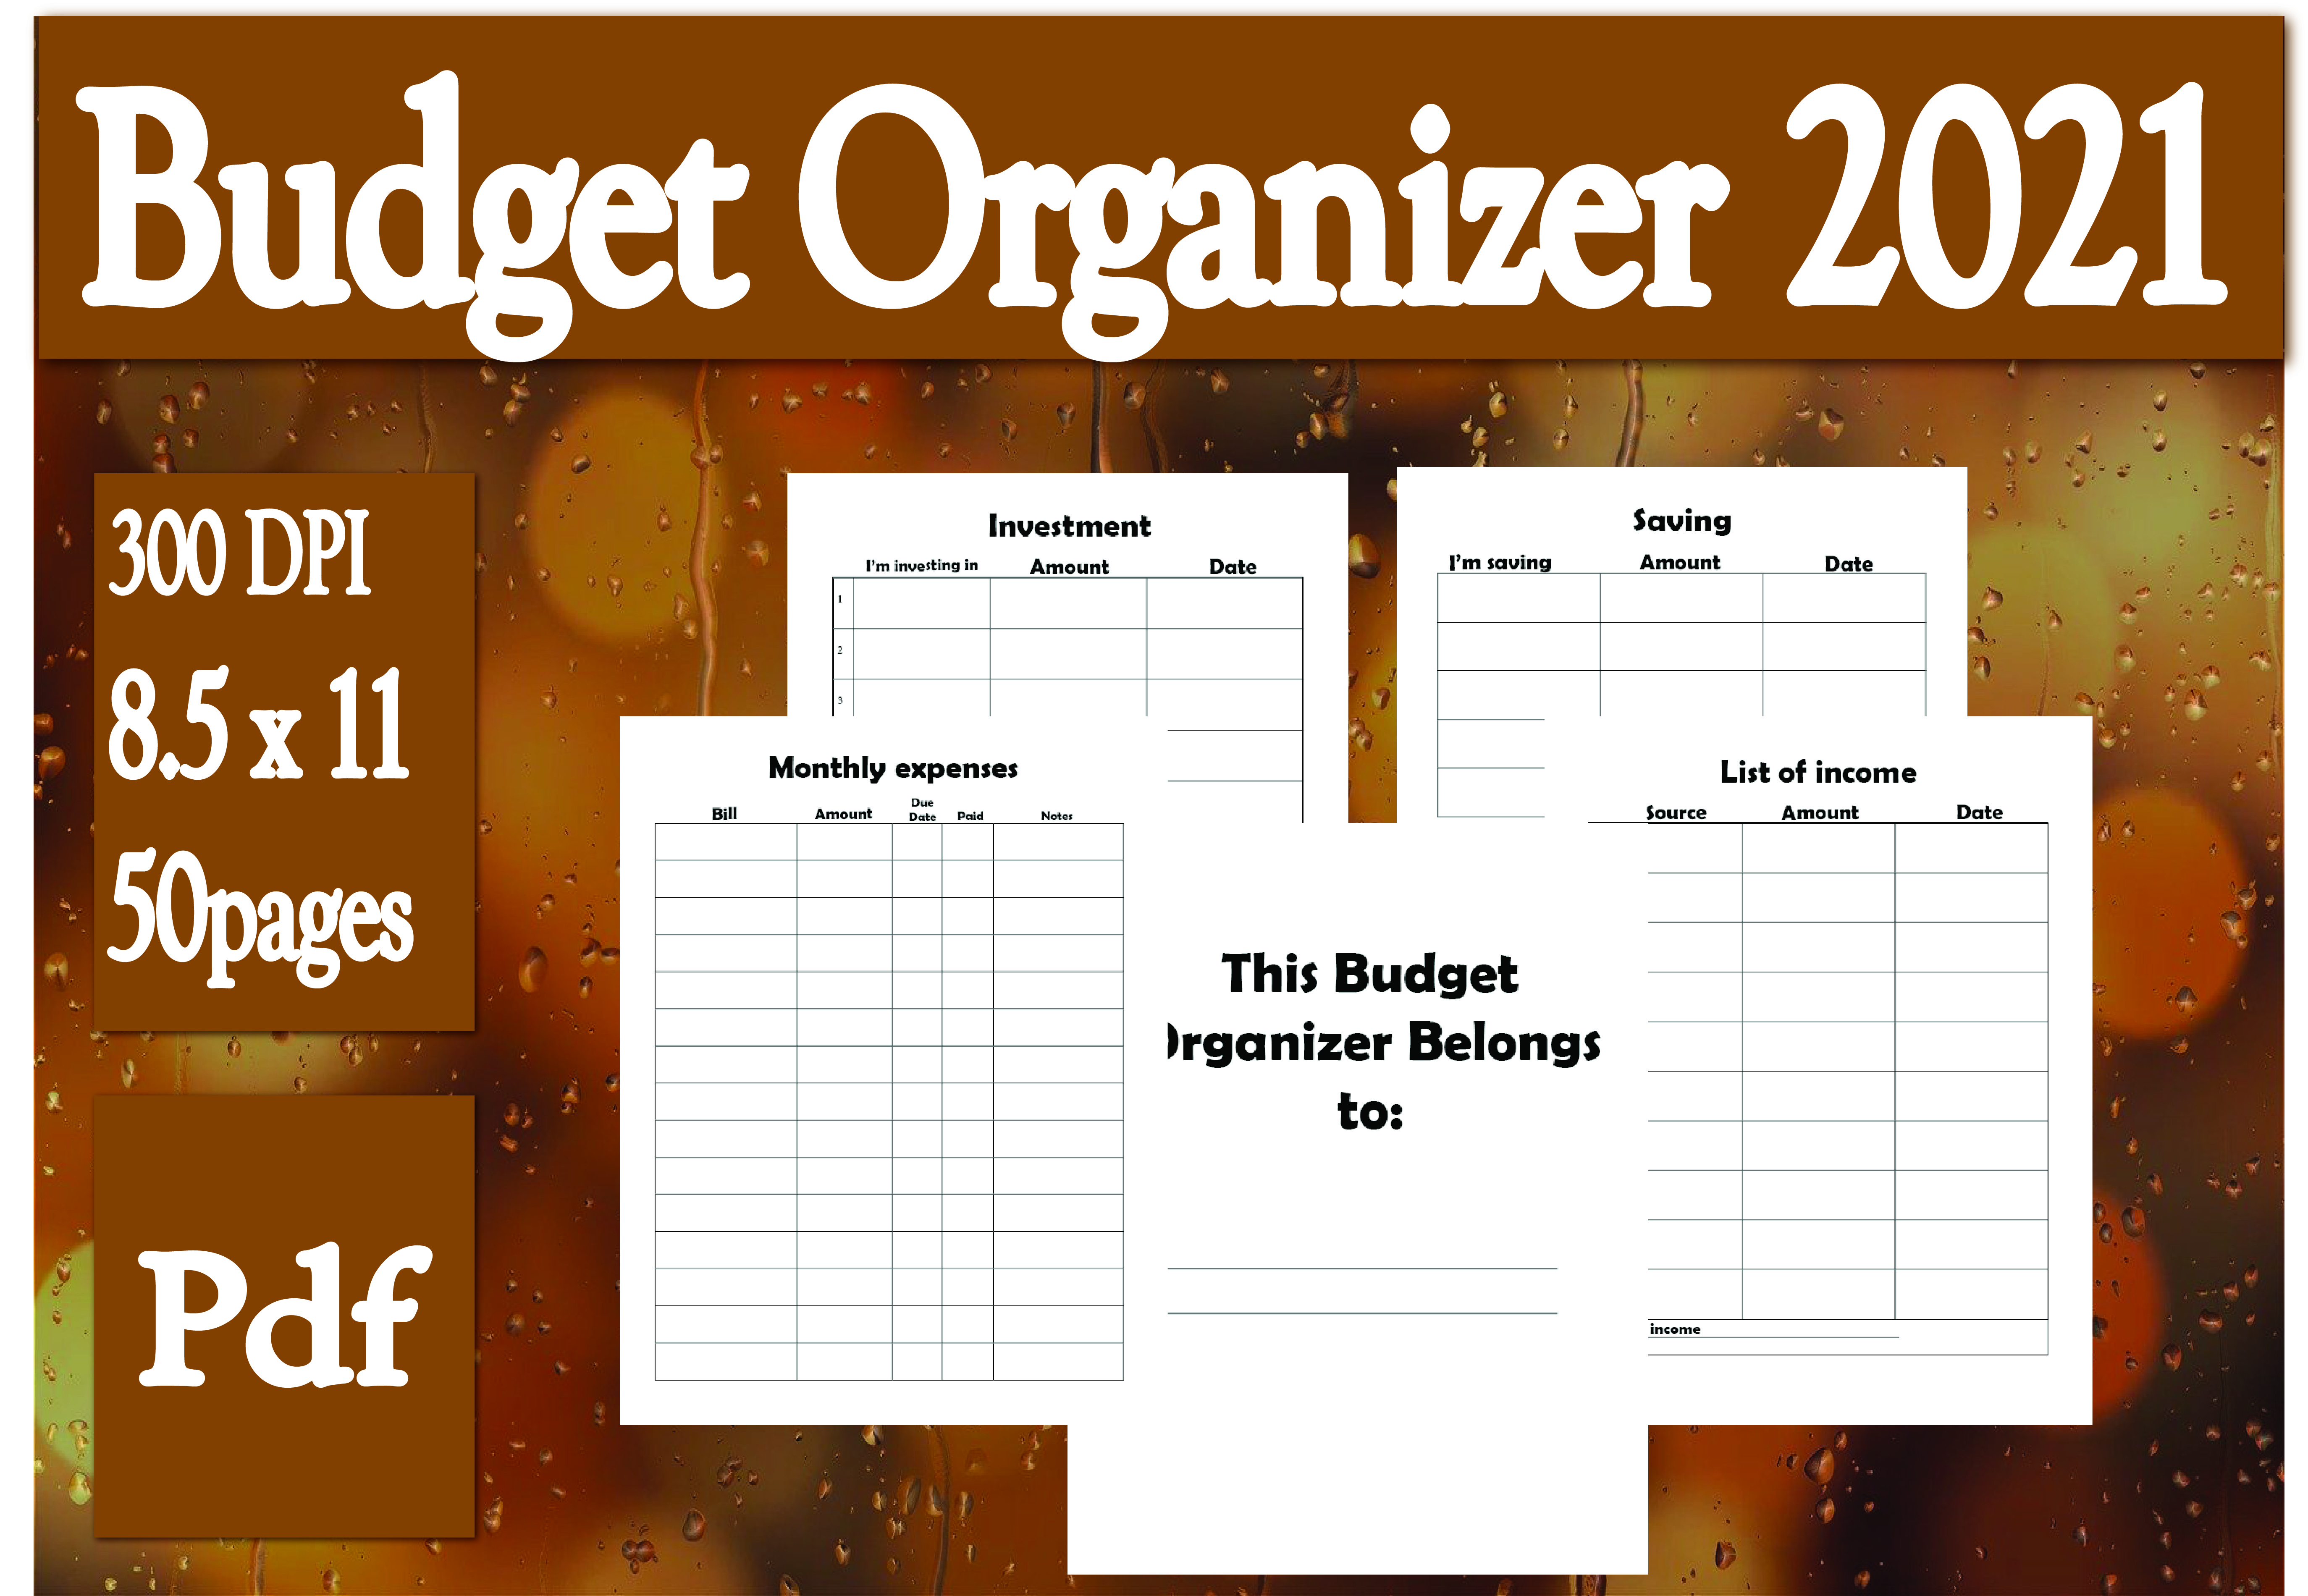 Download Free Budget Organizer 2021 Graphic By Ivana Prue Creative Fabrica for Cricut Explore, Silhouette and other cutting machines.